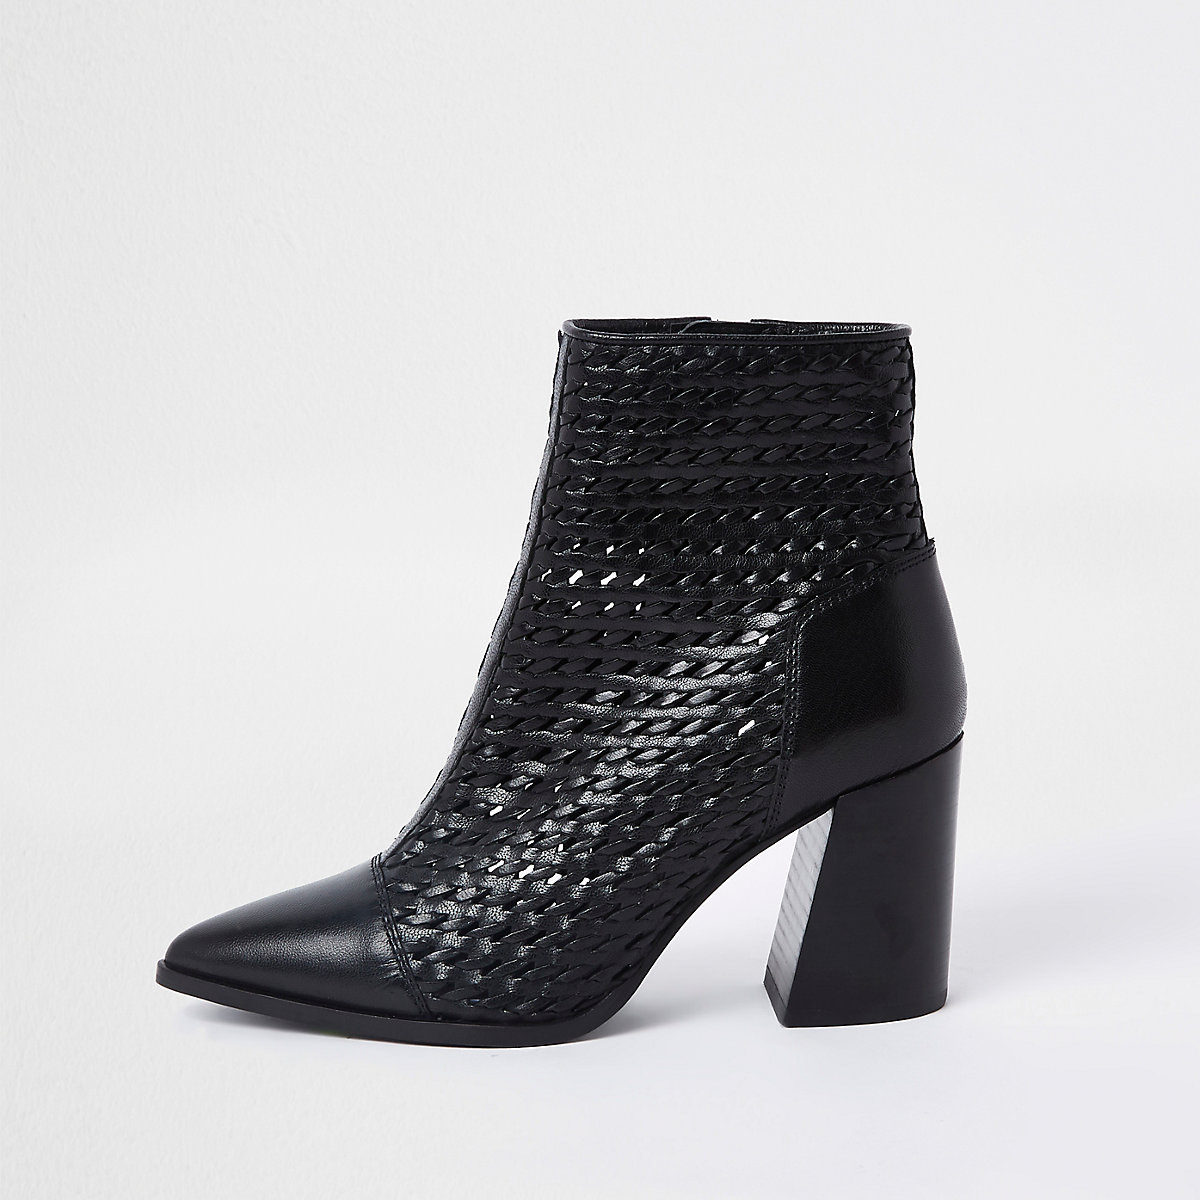 Black leather woven pointed toe boot